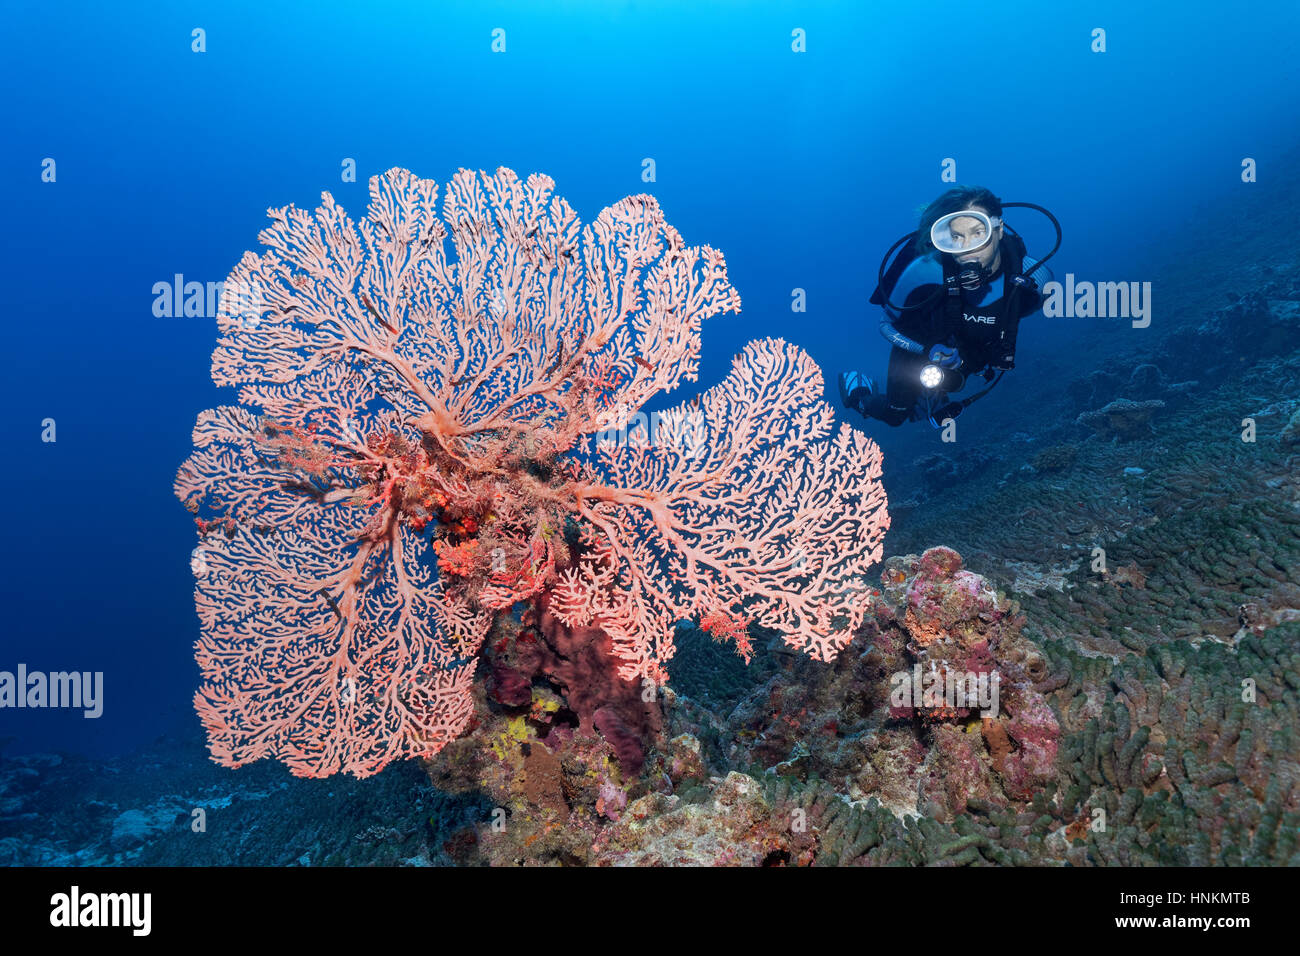 Diver, Soft Coral, indeterminate, rods, Indian Ocean, Maldives - Stock Image